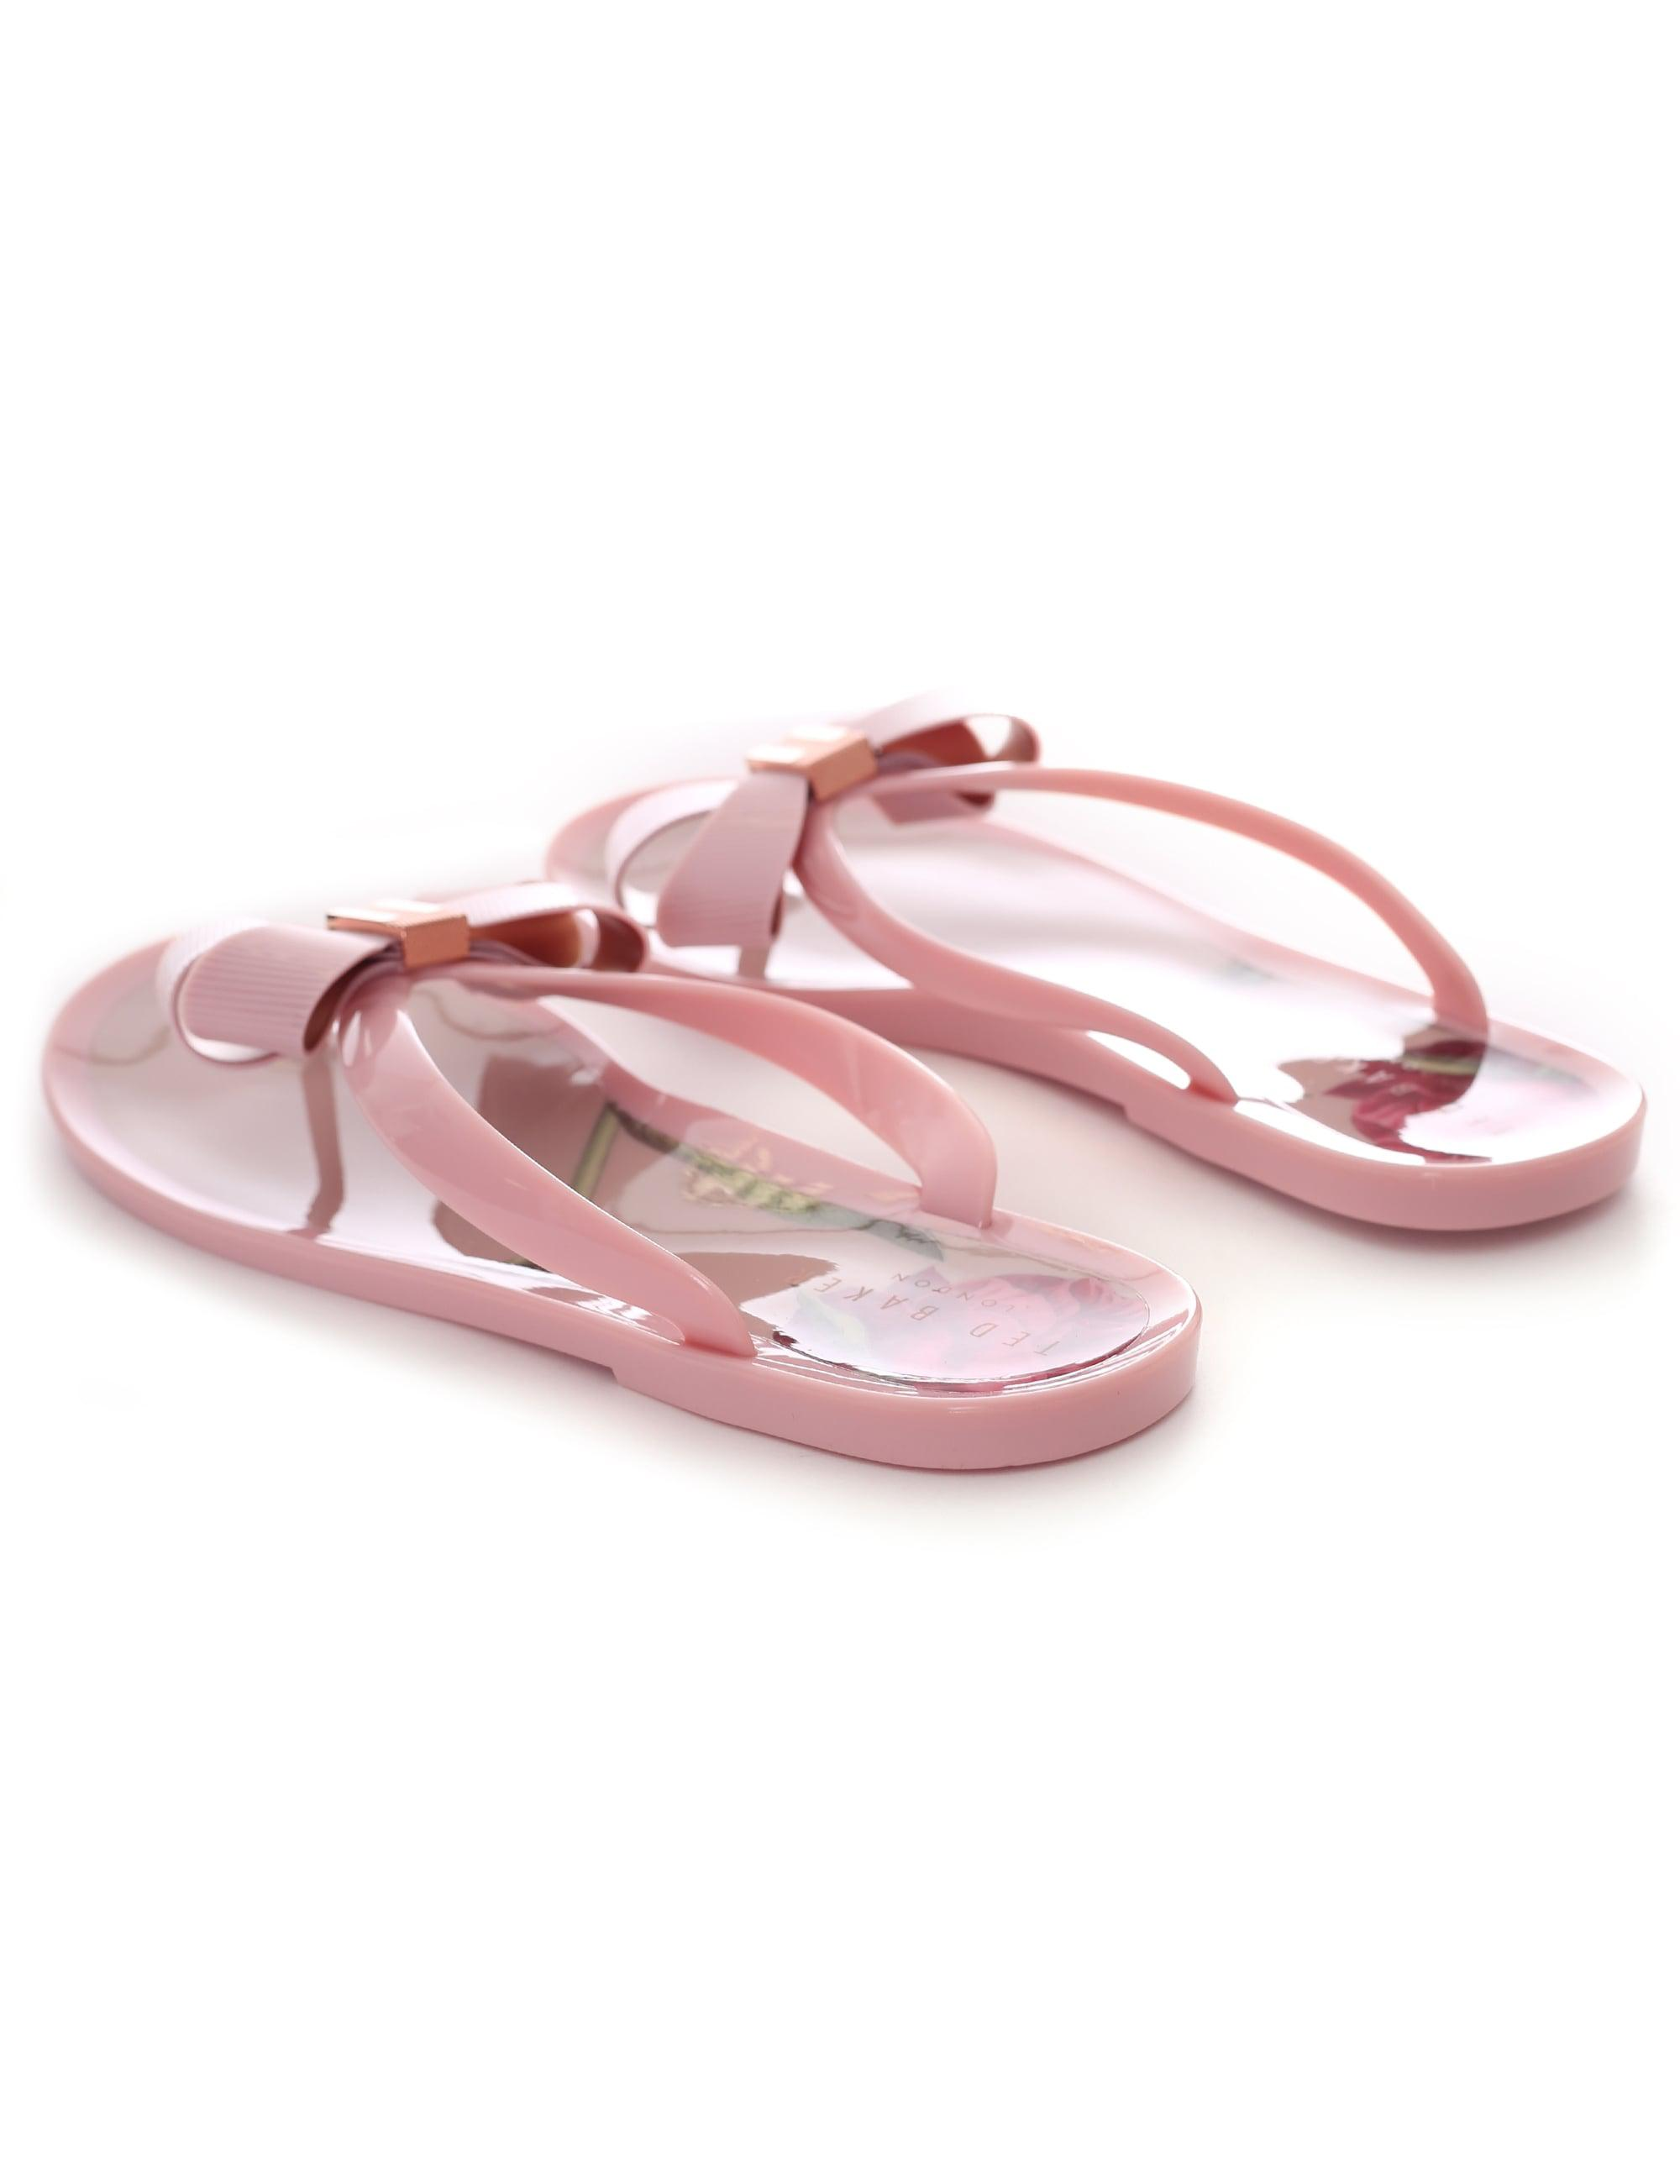 bfd99c6b2eec61 Ted Baker Suzie P Bow Detail Flip Flop in Pink - Lyst